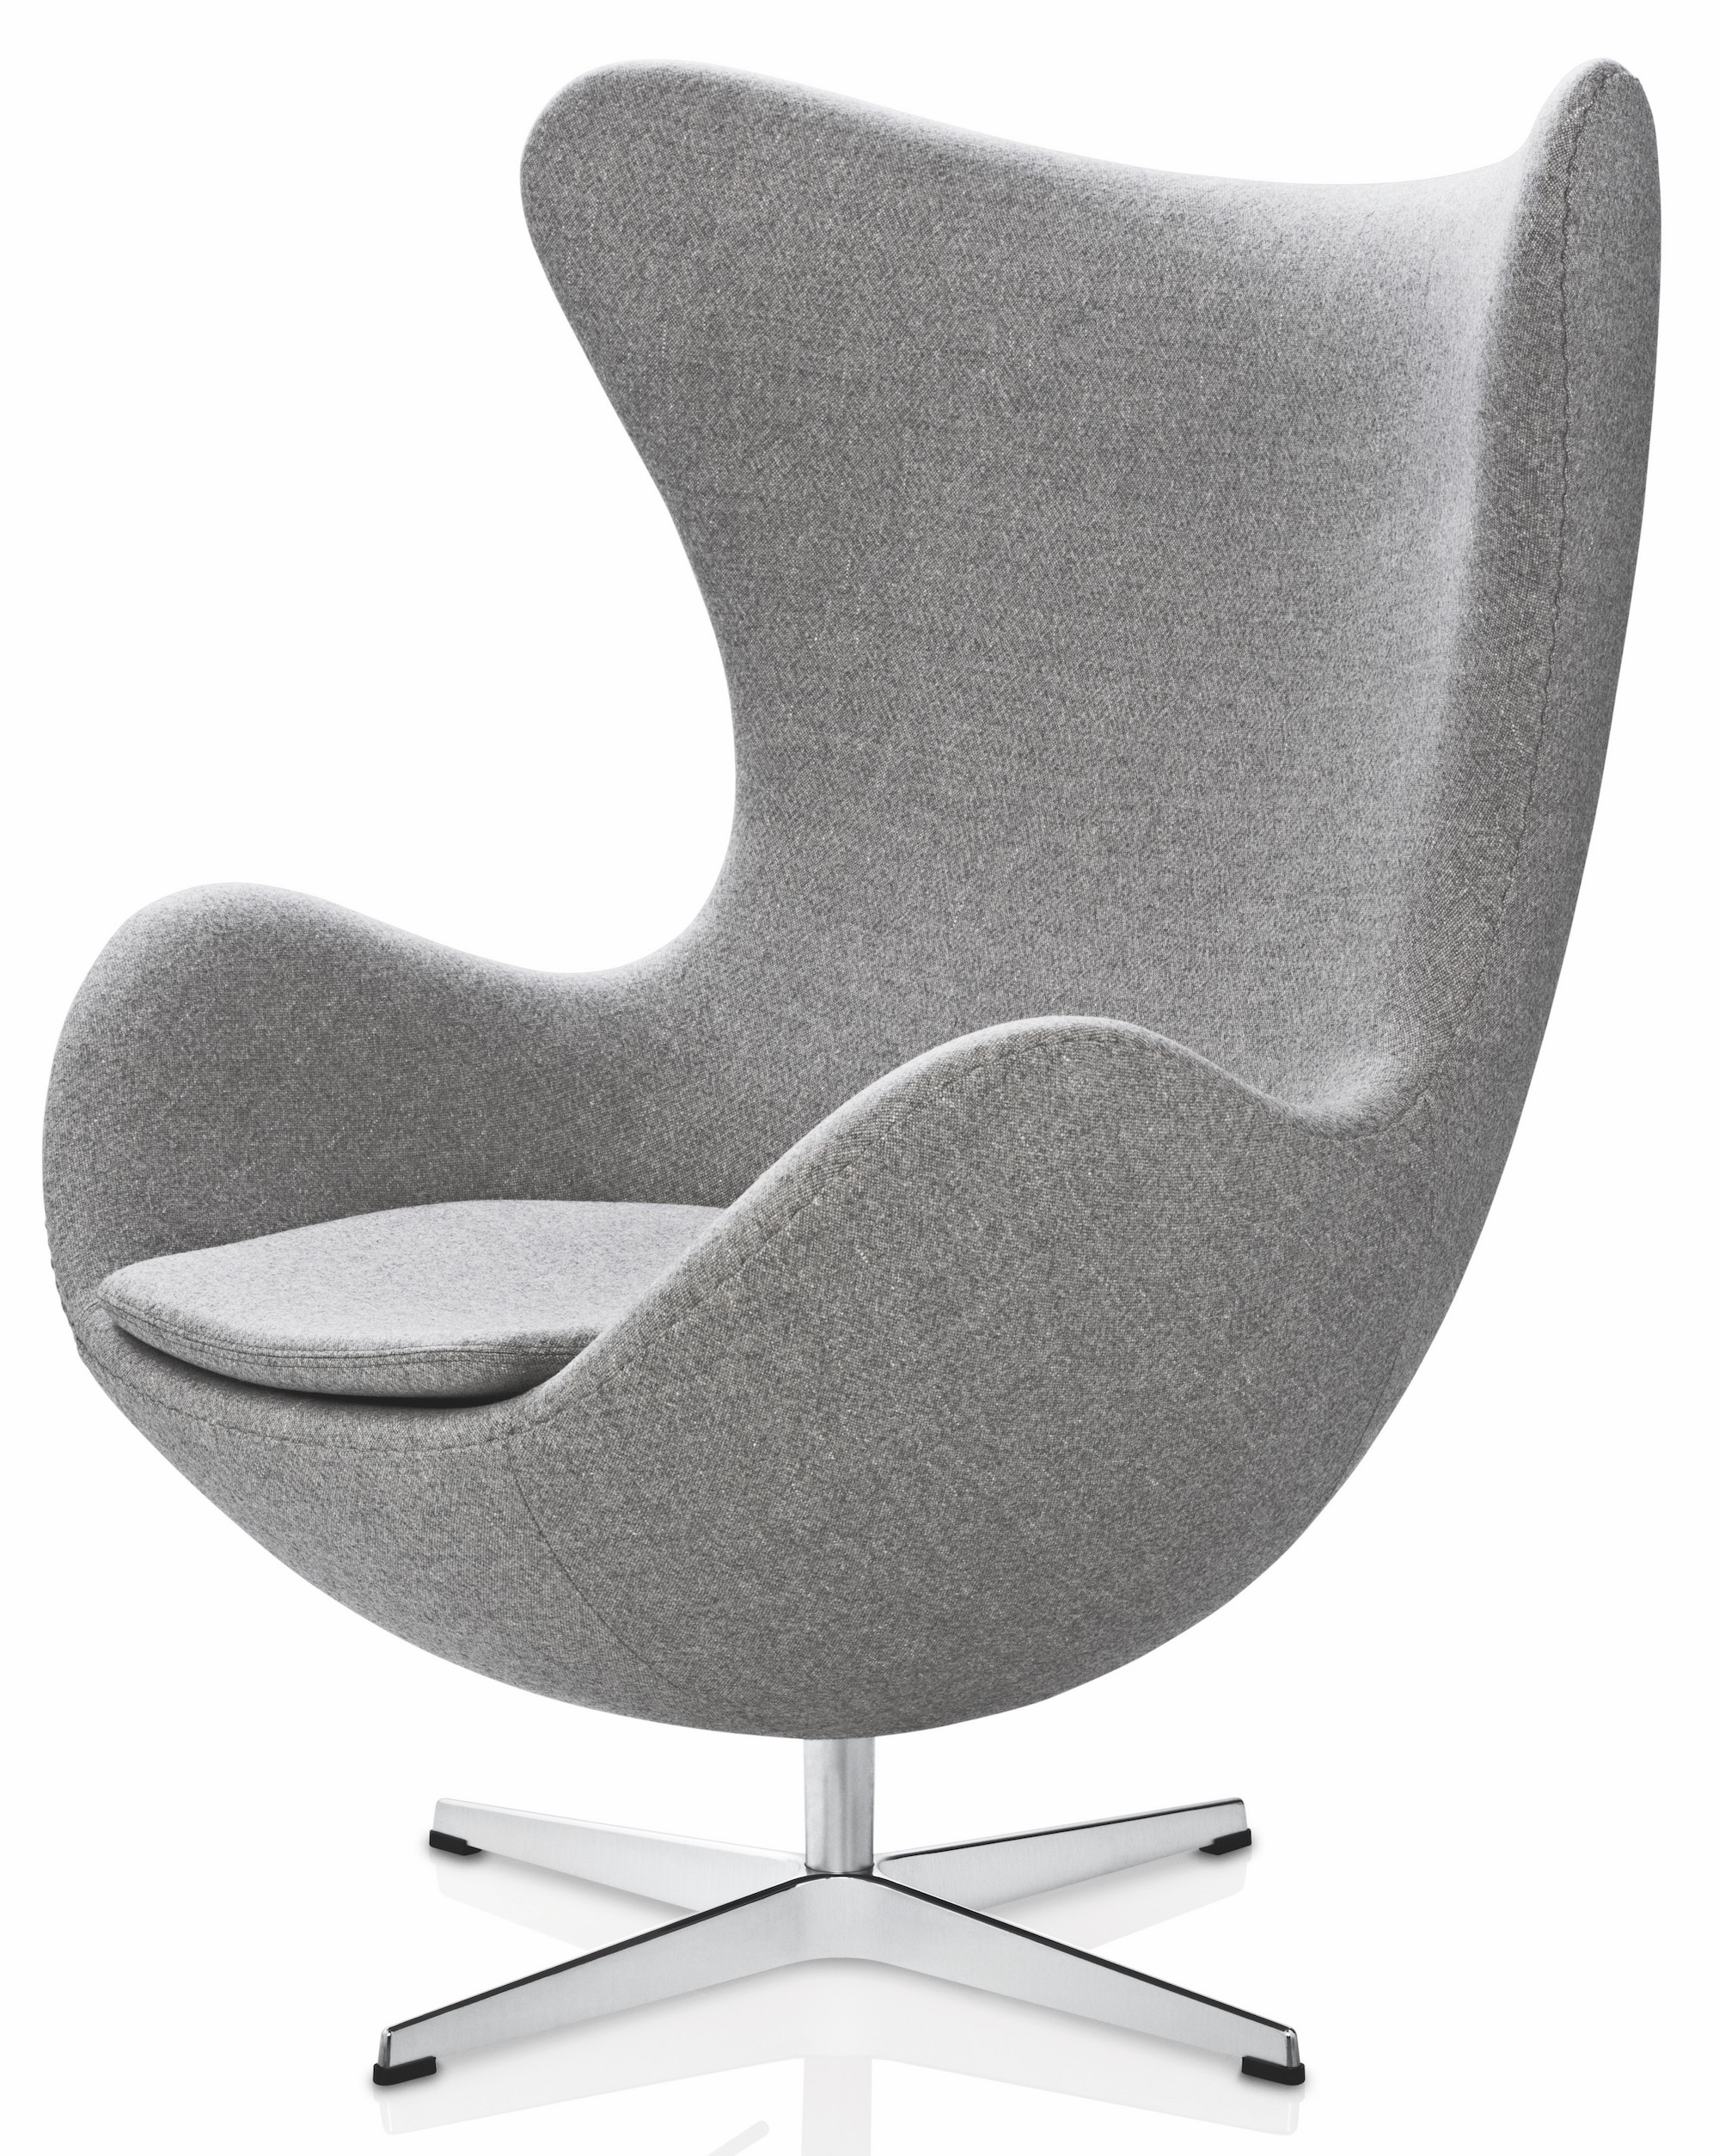 arne jacobsen designed the egg chair for the lobby and reception areas in the royal hotel in copenhagen the commission to design every element of the - Fauteuil Egg Jacobsen